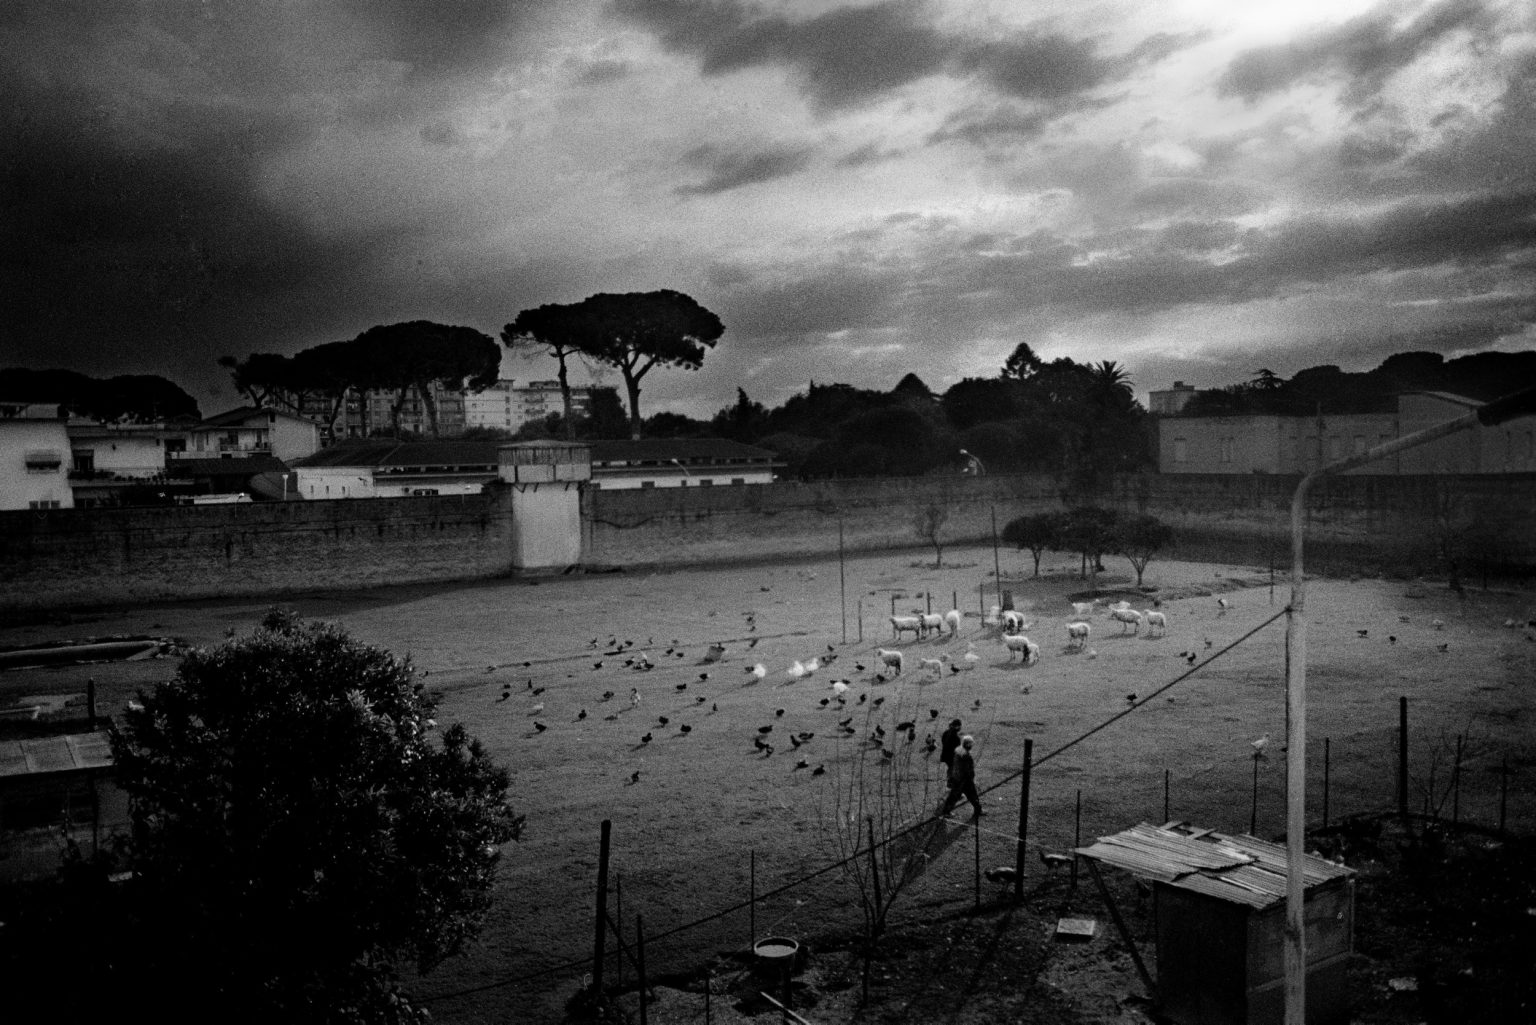 """Aversa ( Caserta ), January 2007 - The Judicial Psychiatric Hospital """"Filippo Saporito"""" - Aerial view of the green area in which some selected inmates are responsible for land cultivation and cattle breeding"""